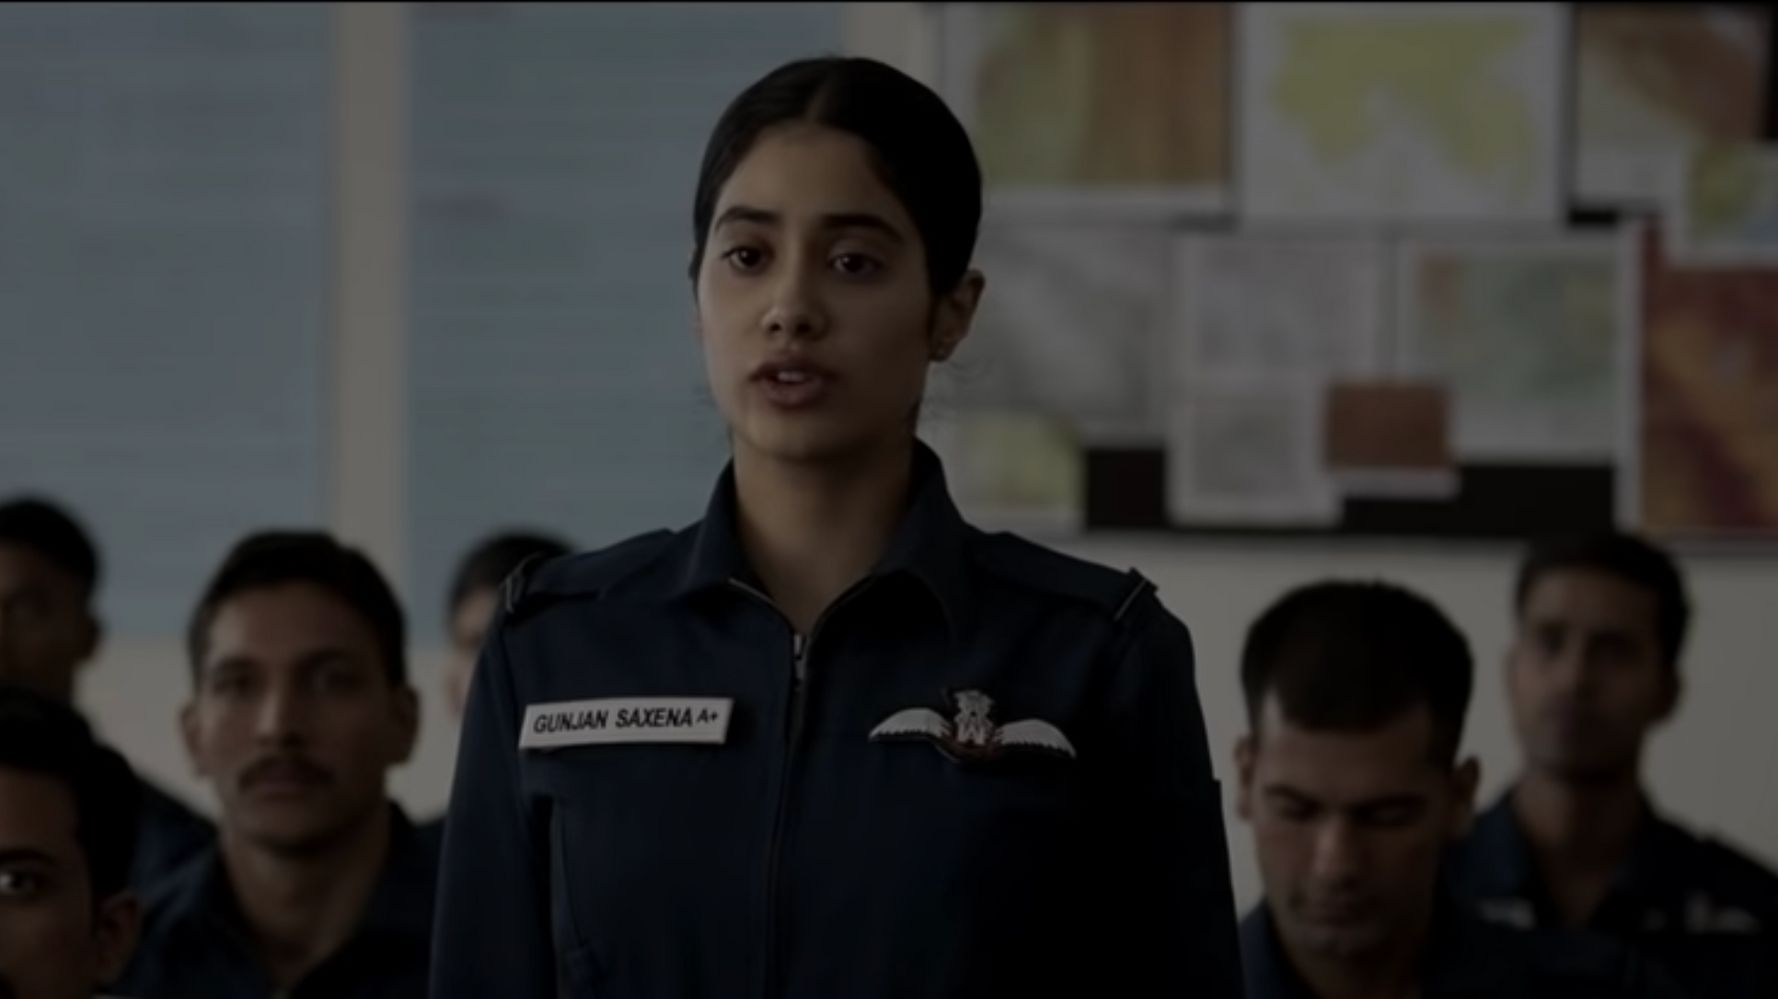 Gunjan Saxena The Kargil Girl Iaf Objects To Its Undue Negative Portrayal Huffpost India Entertainment